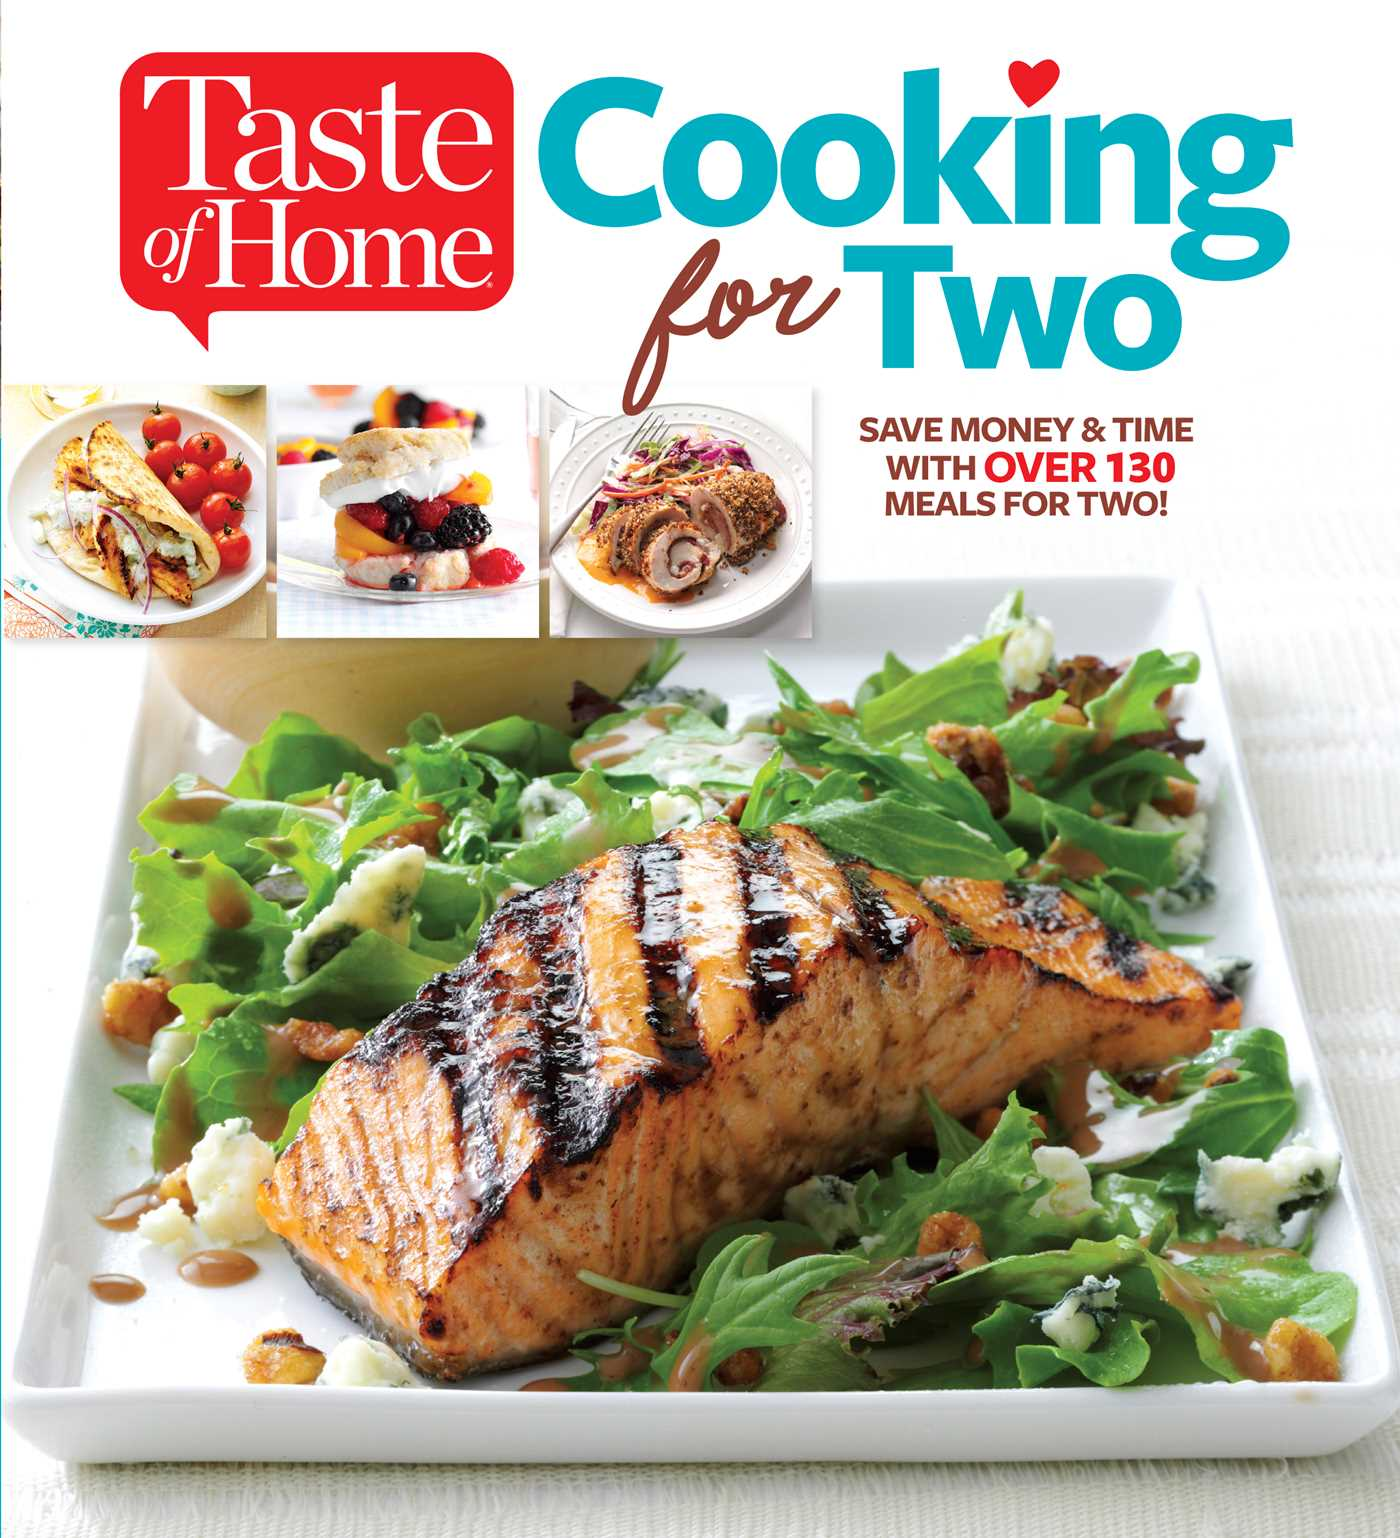 Taste of home cooking for two 9781617656507 hr